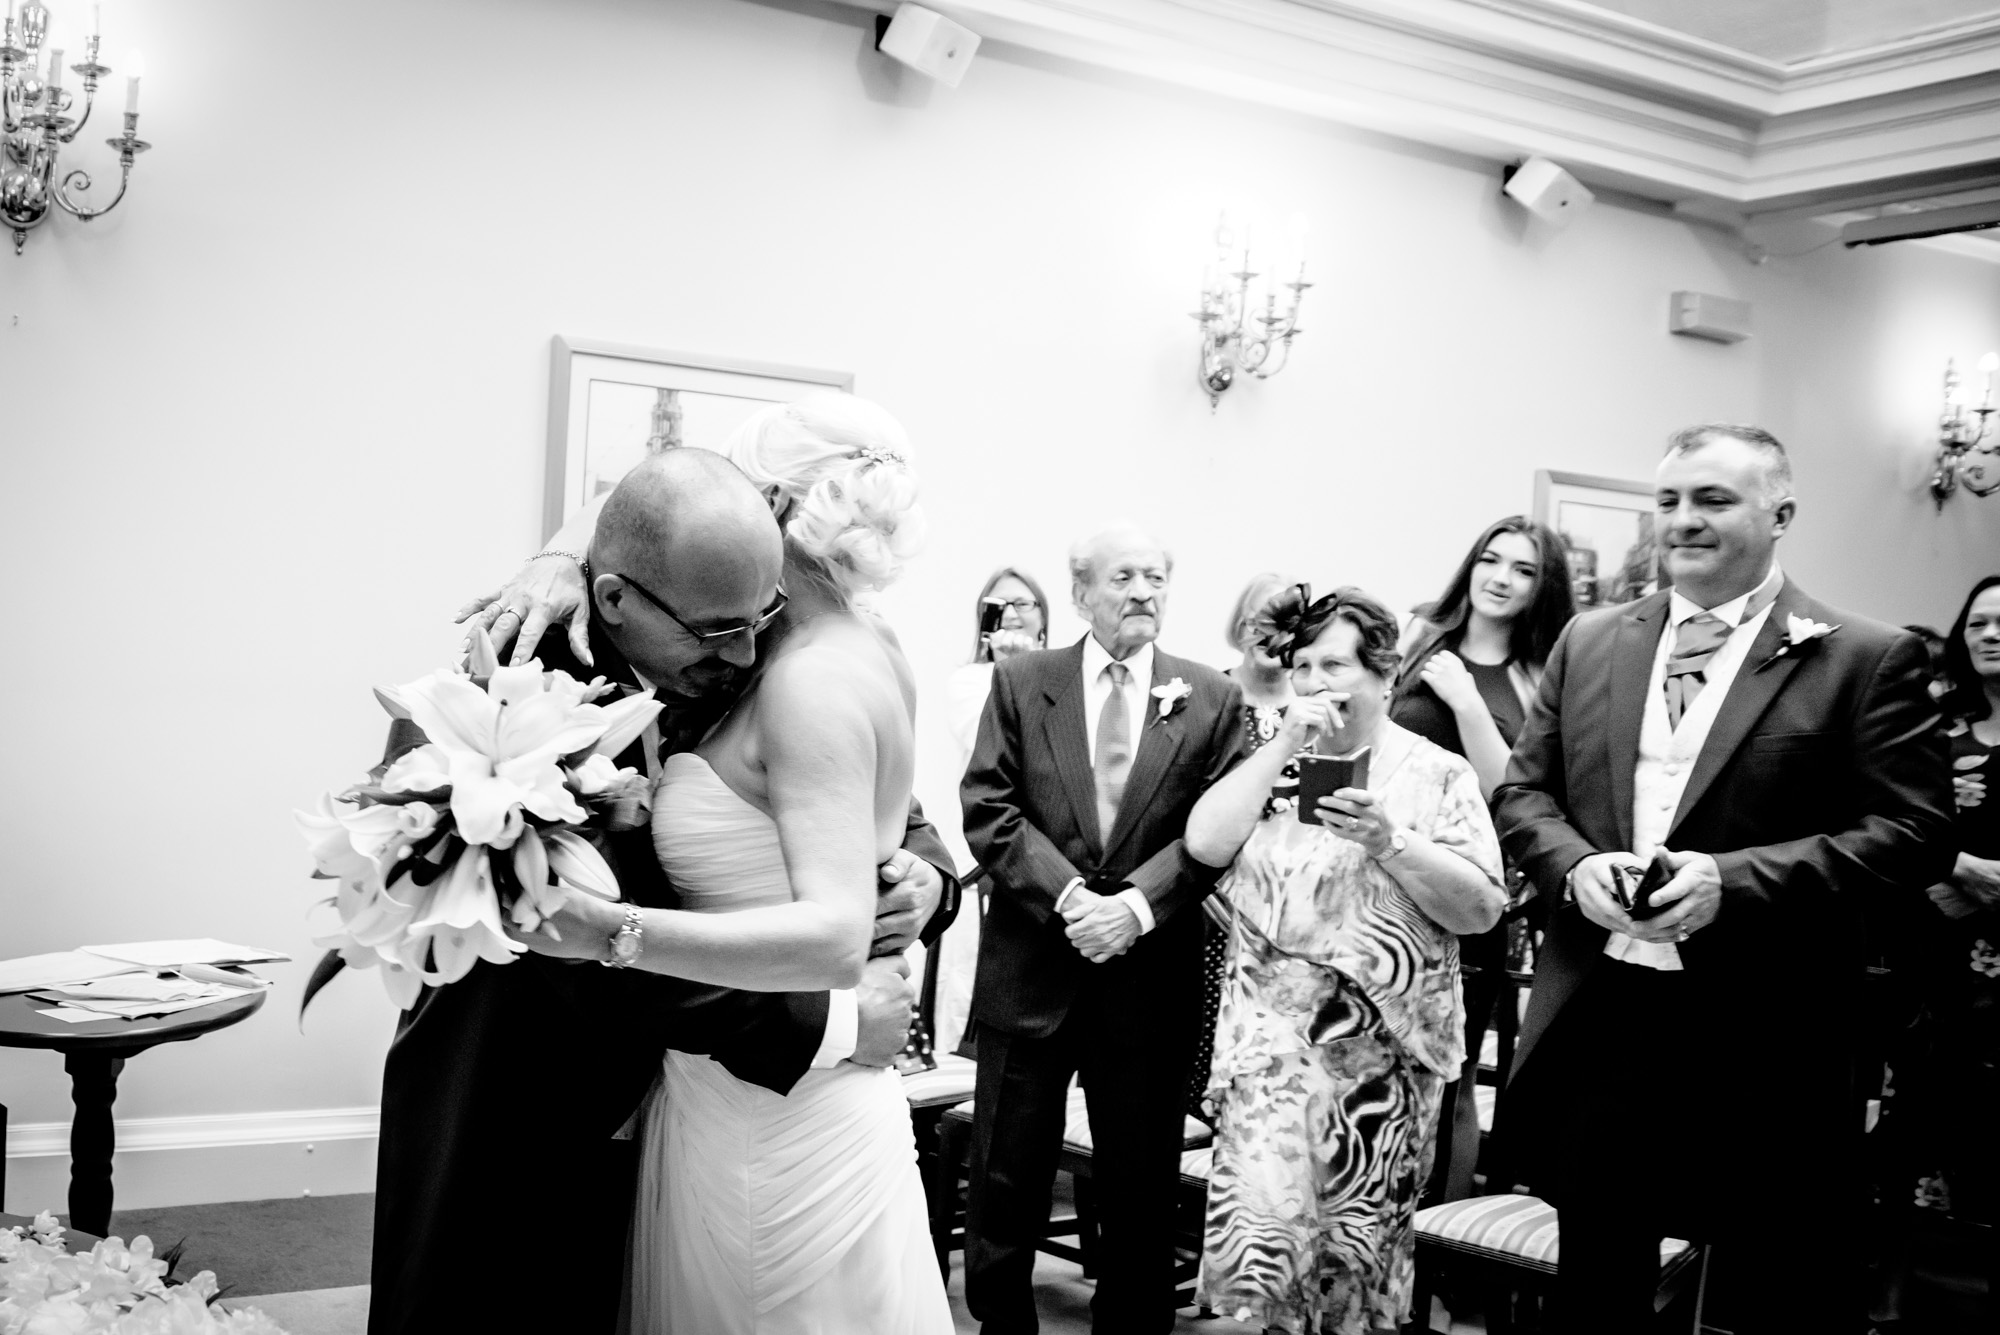 Bride and groom hugging at the beginning of the wedding ceremony in Stockport